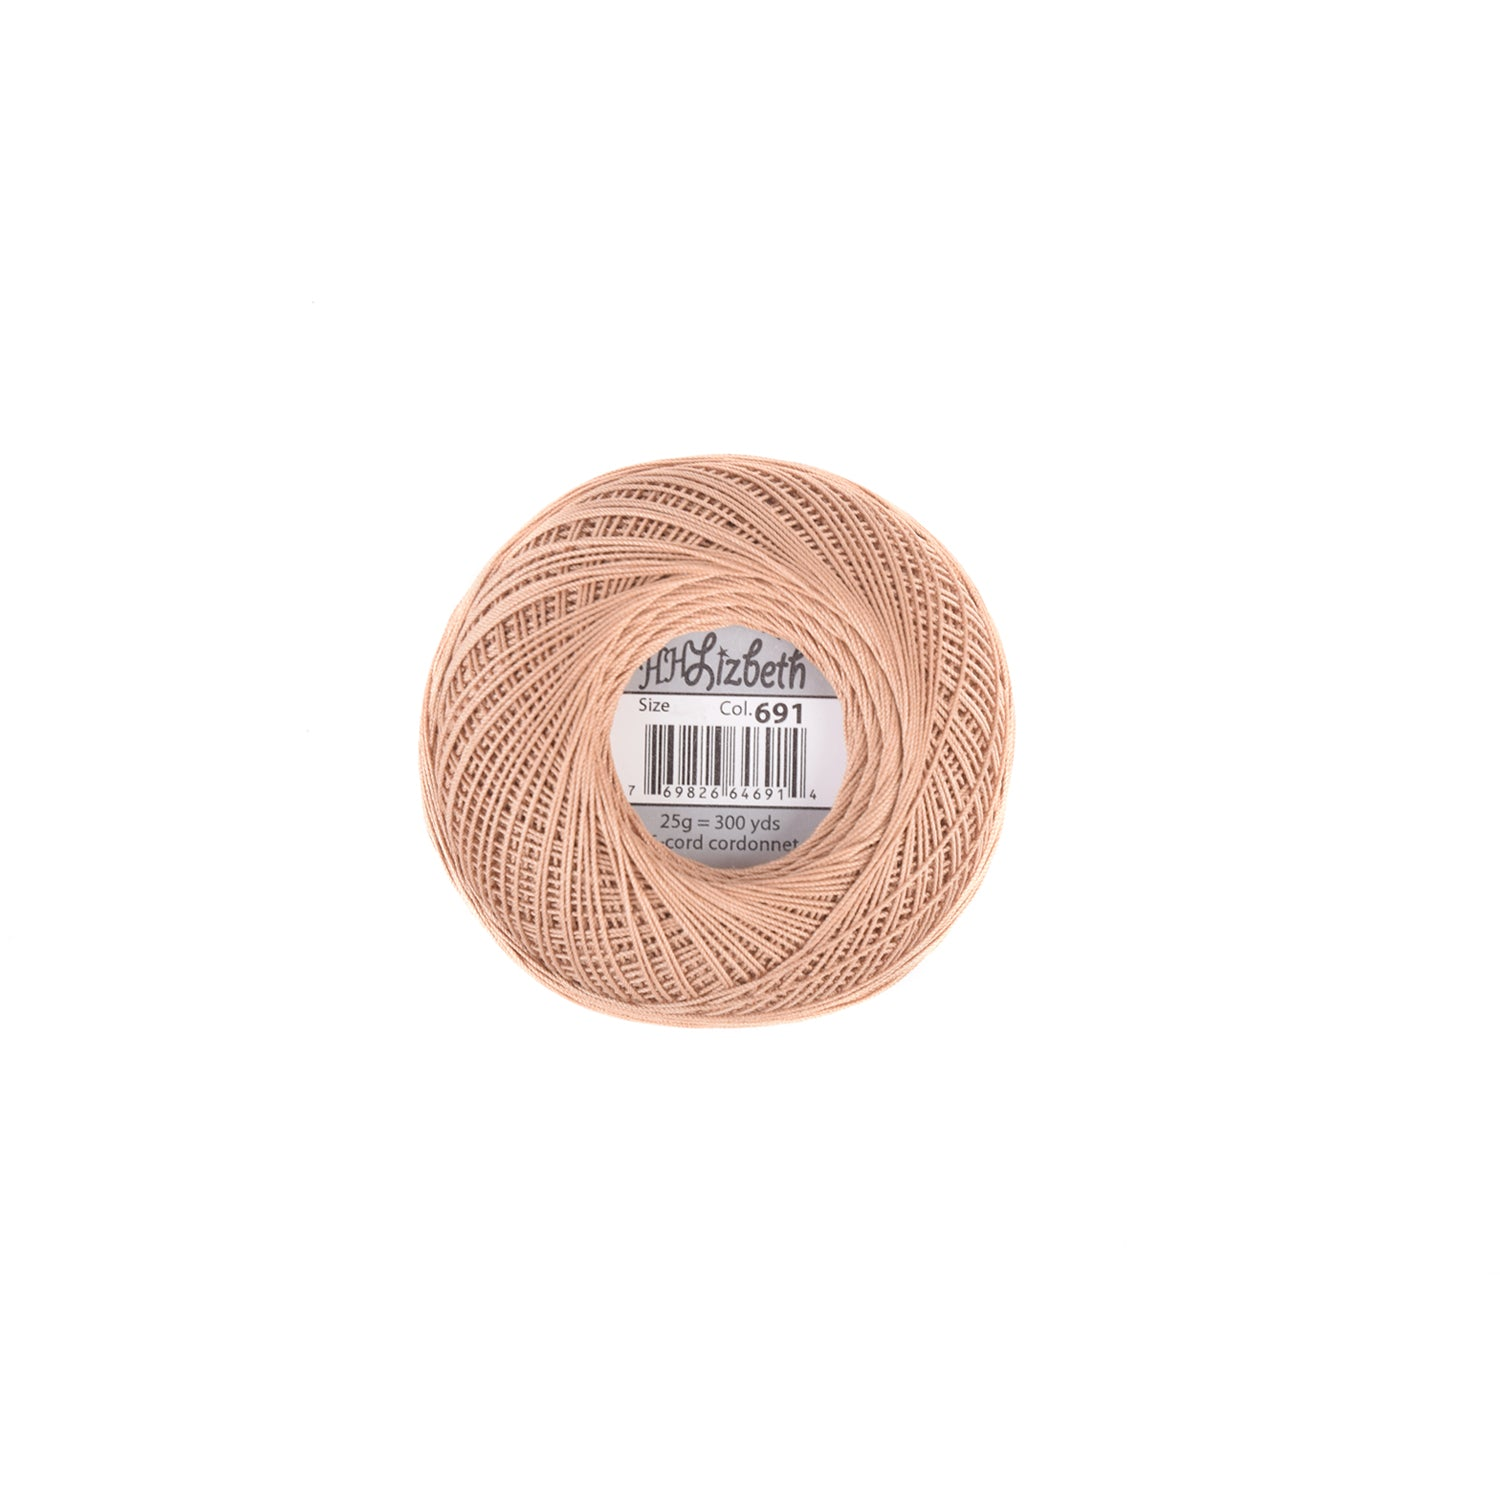 Lizbeth Cotton Thread Mocha Brown Med 691